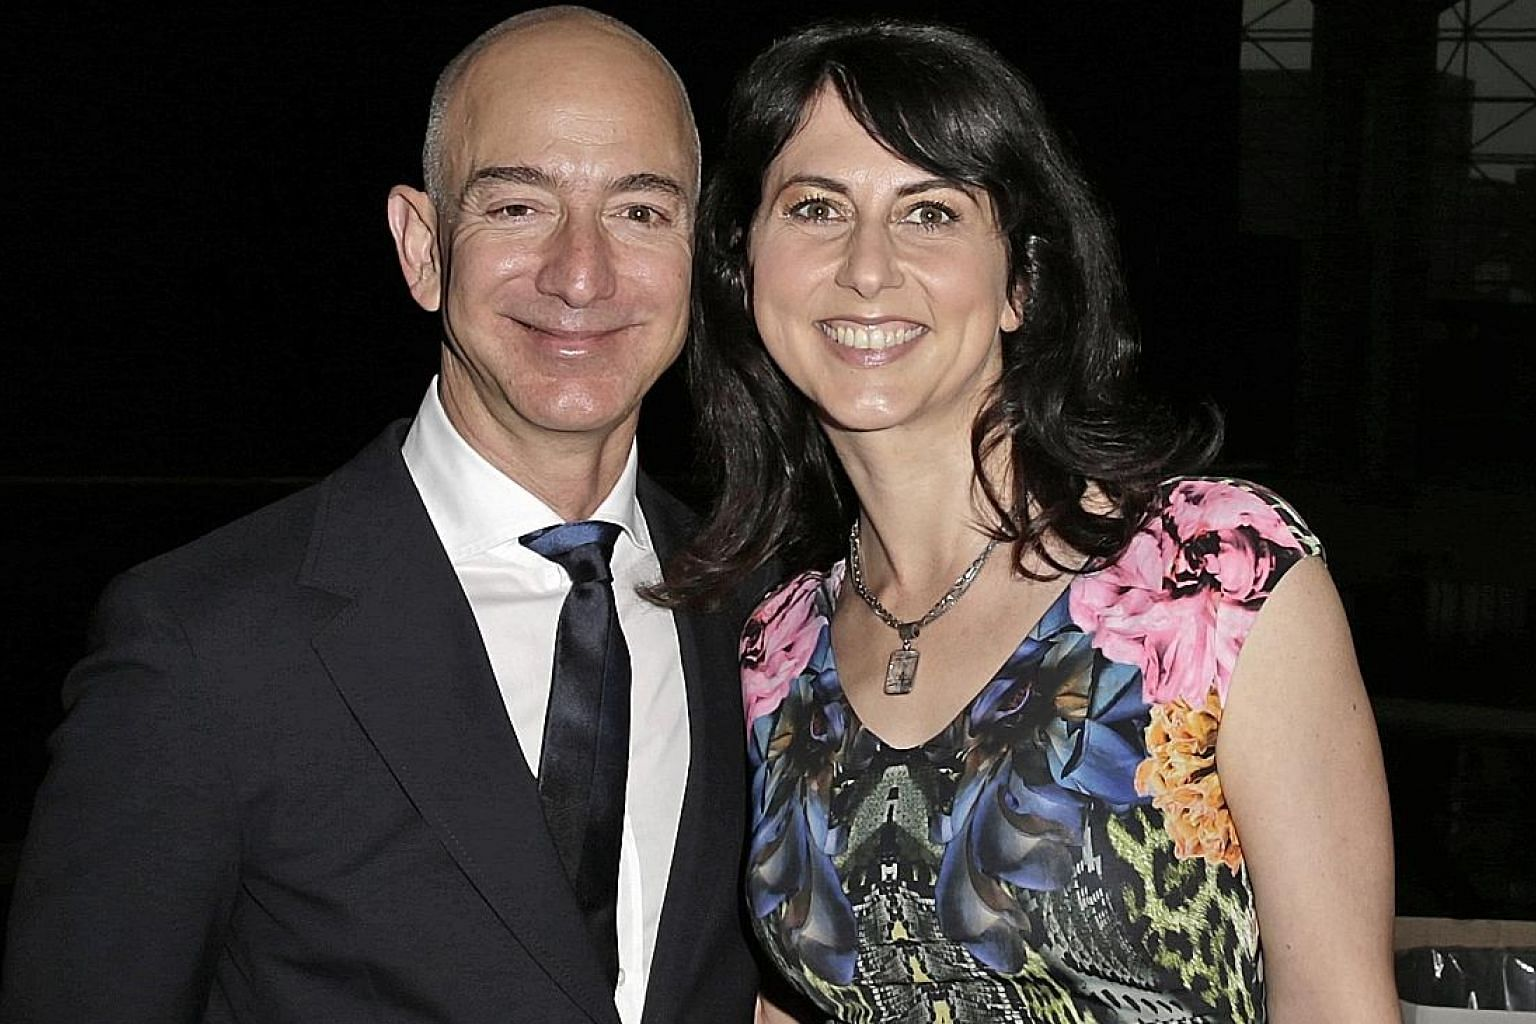 Mr Jeff Bezos and his wife MacKenzie. They met when he interviewed her for a job at New York hedge fund D. E. Shaw & Co in 1993.